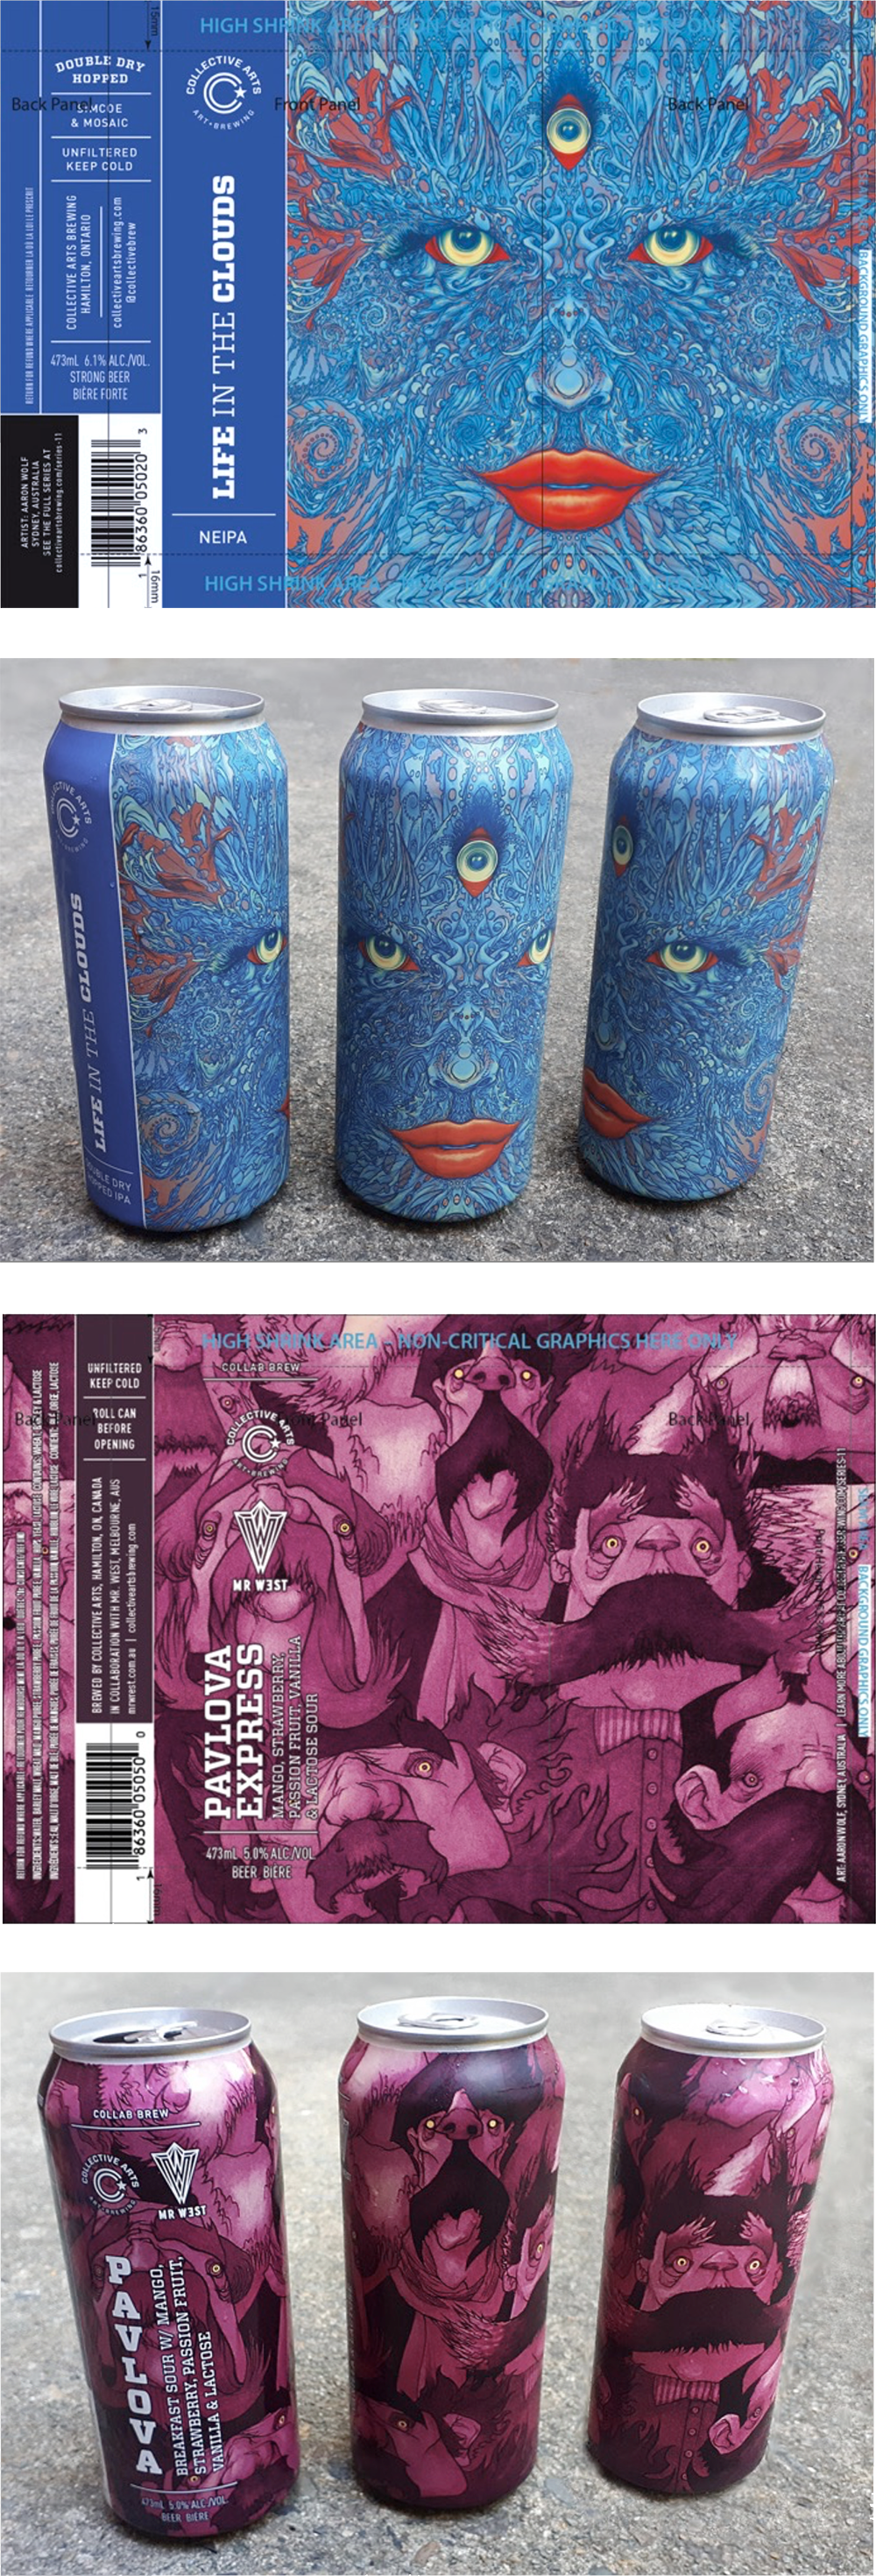 Photographs of both different cans of Collective Arts Brewing beers that my art was featured on the label.  One is an IPA and the other is a Pavlova fruit sour